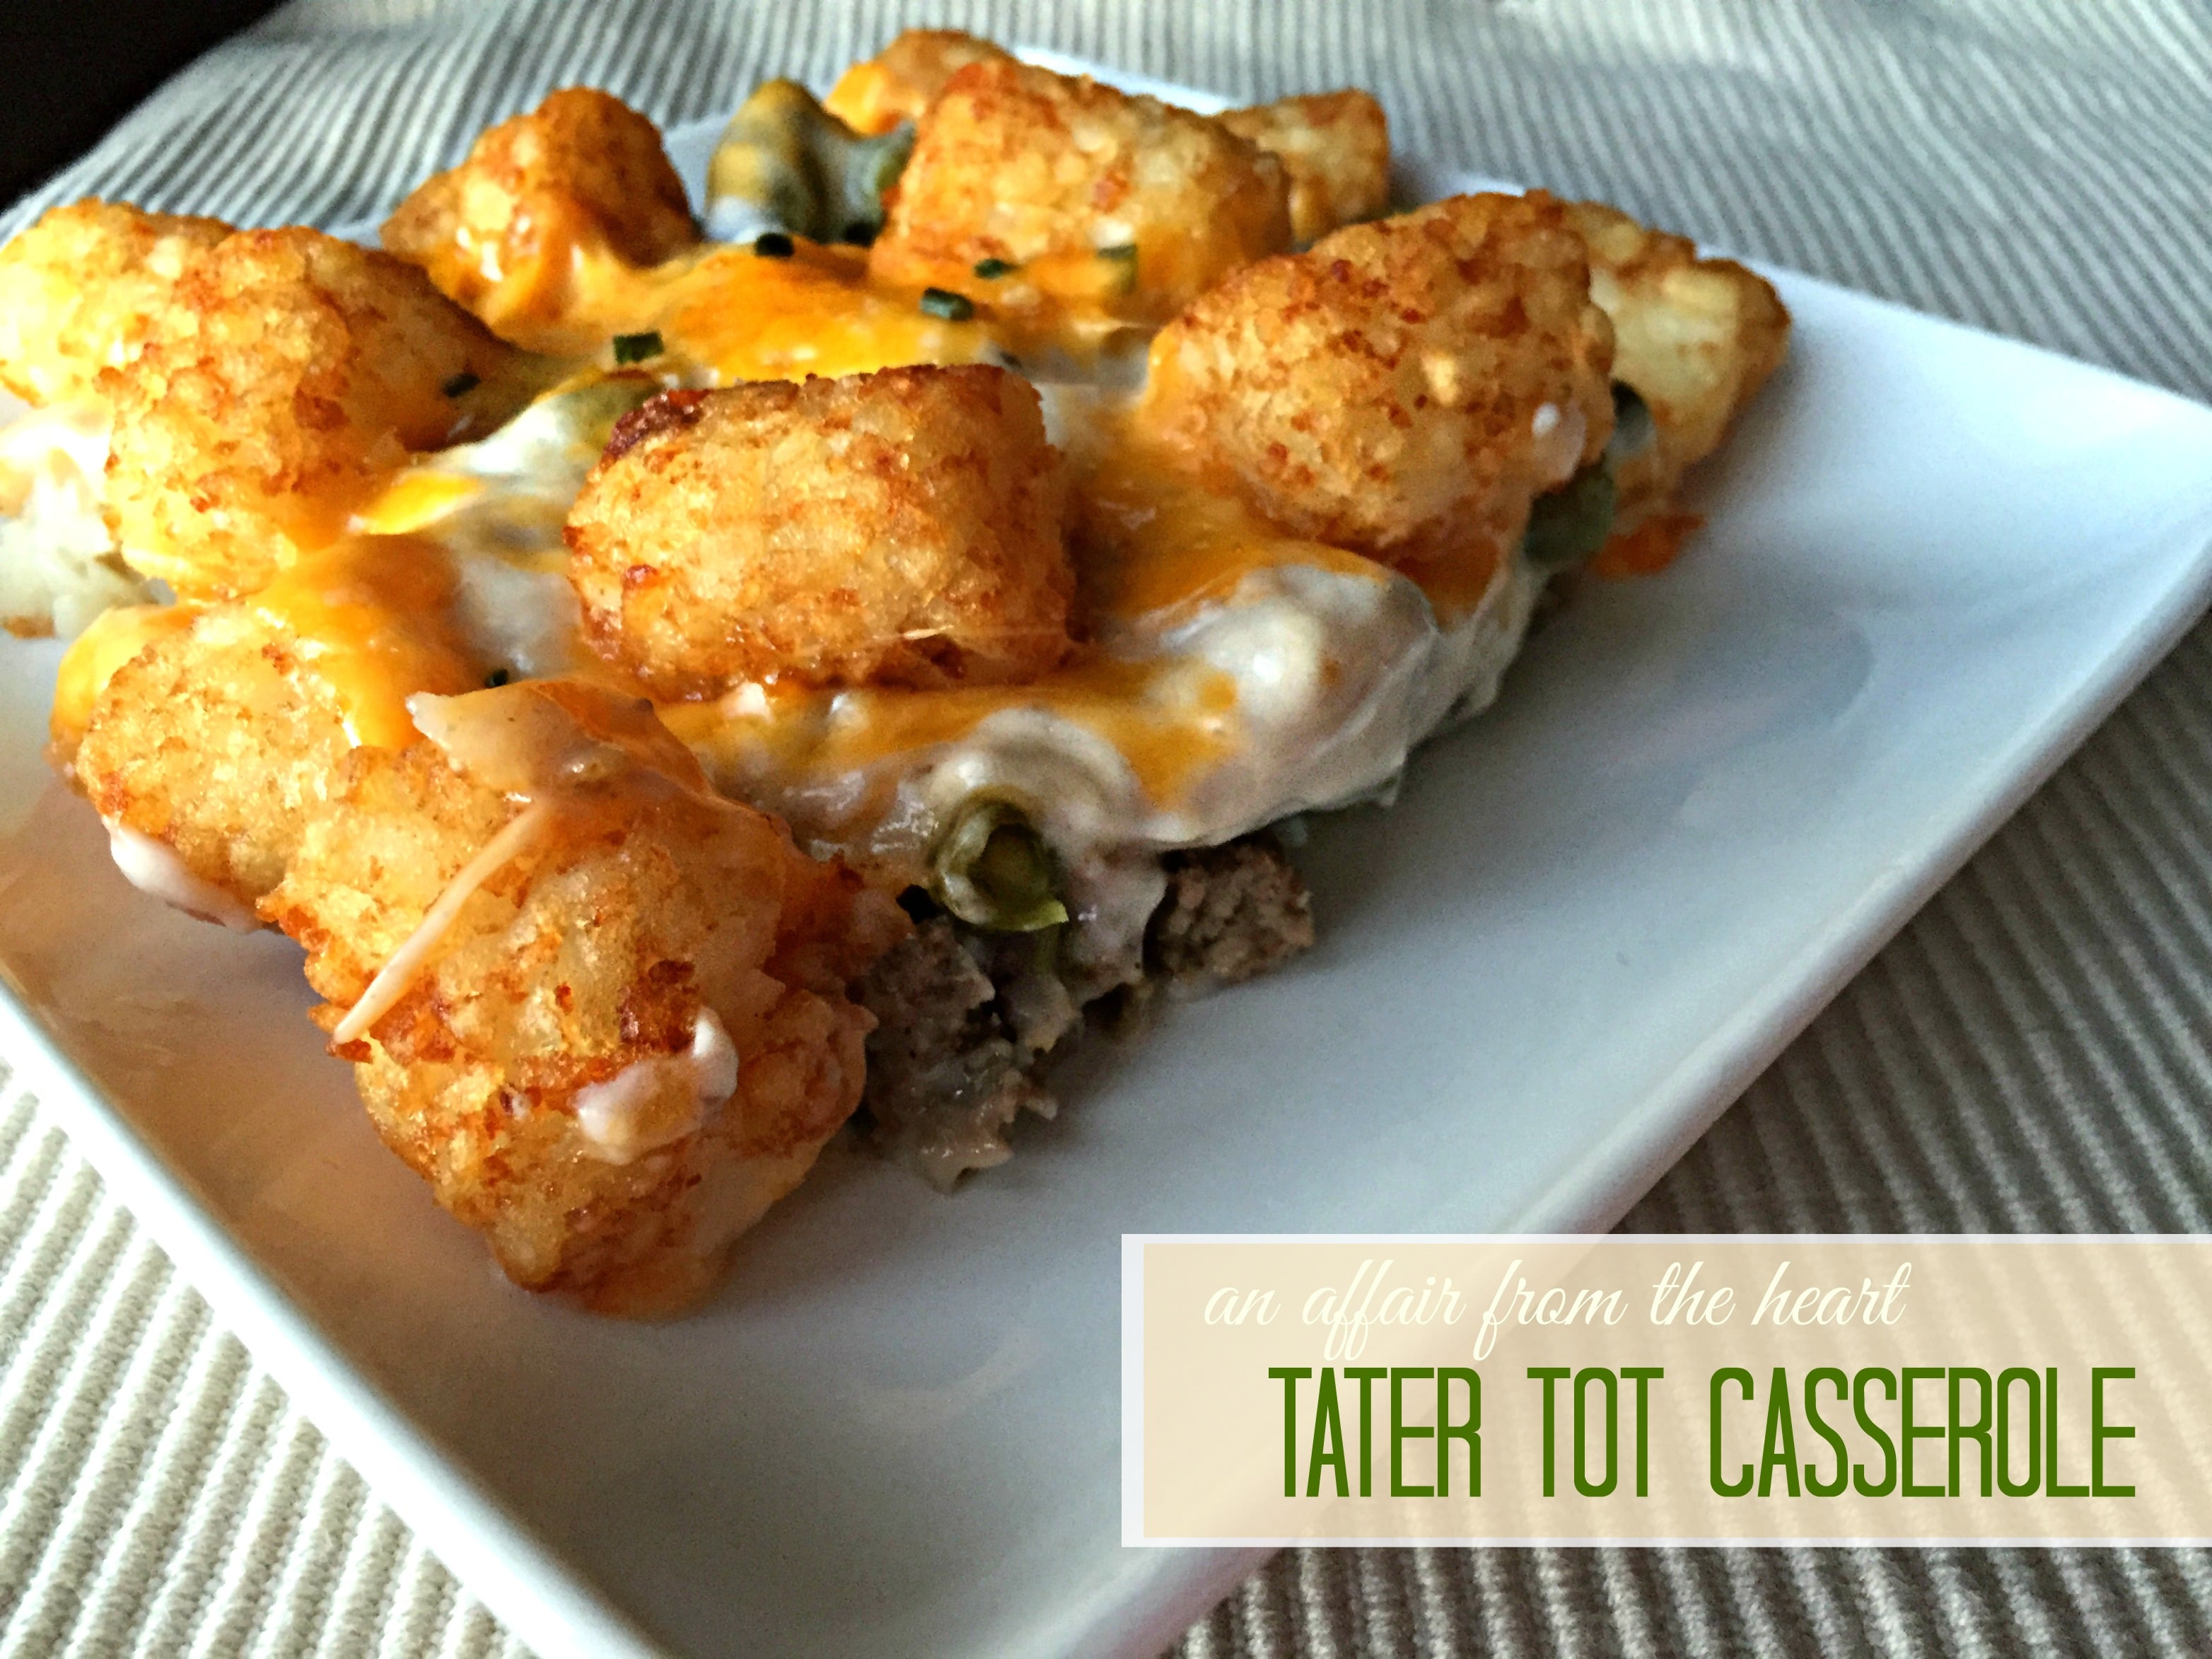 from 3 reviews tater tot casserole print tater tot